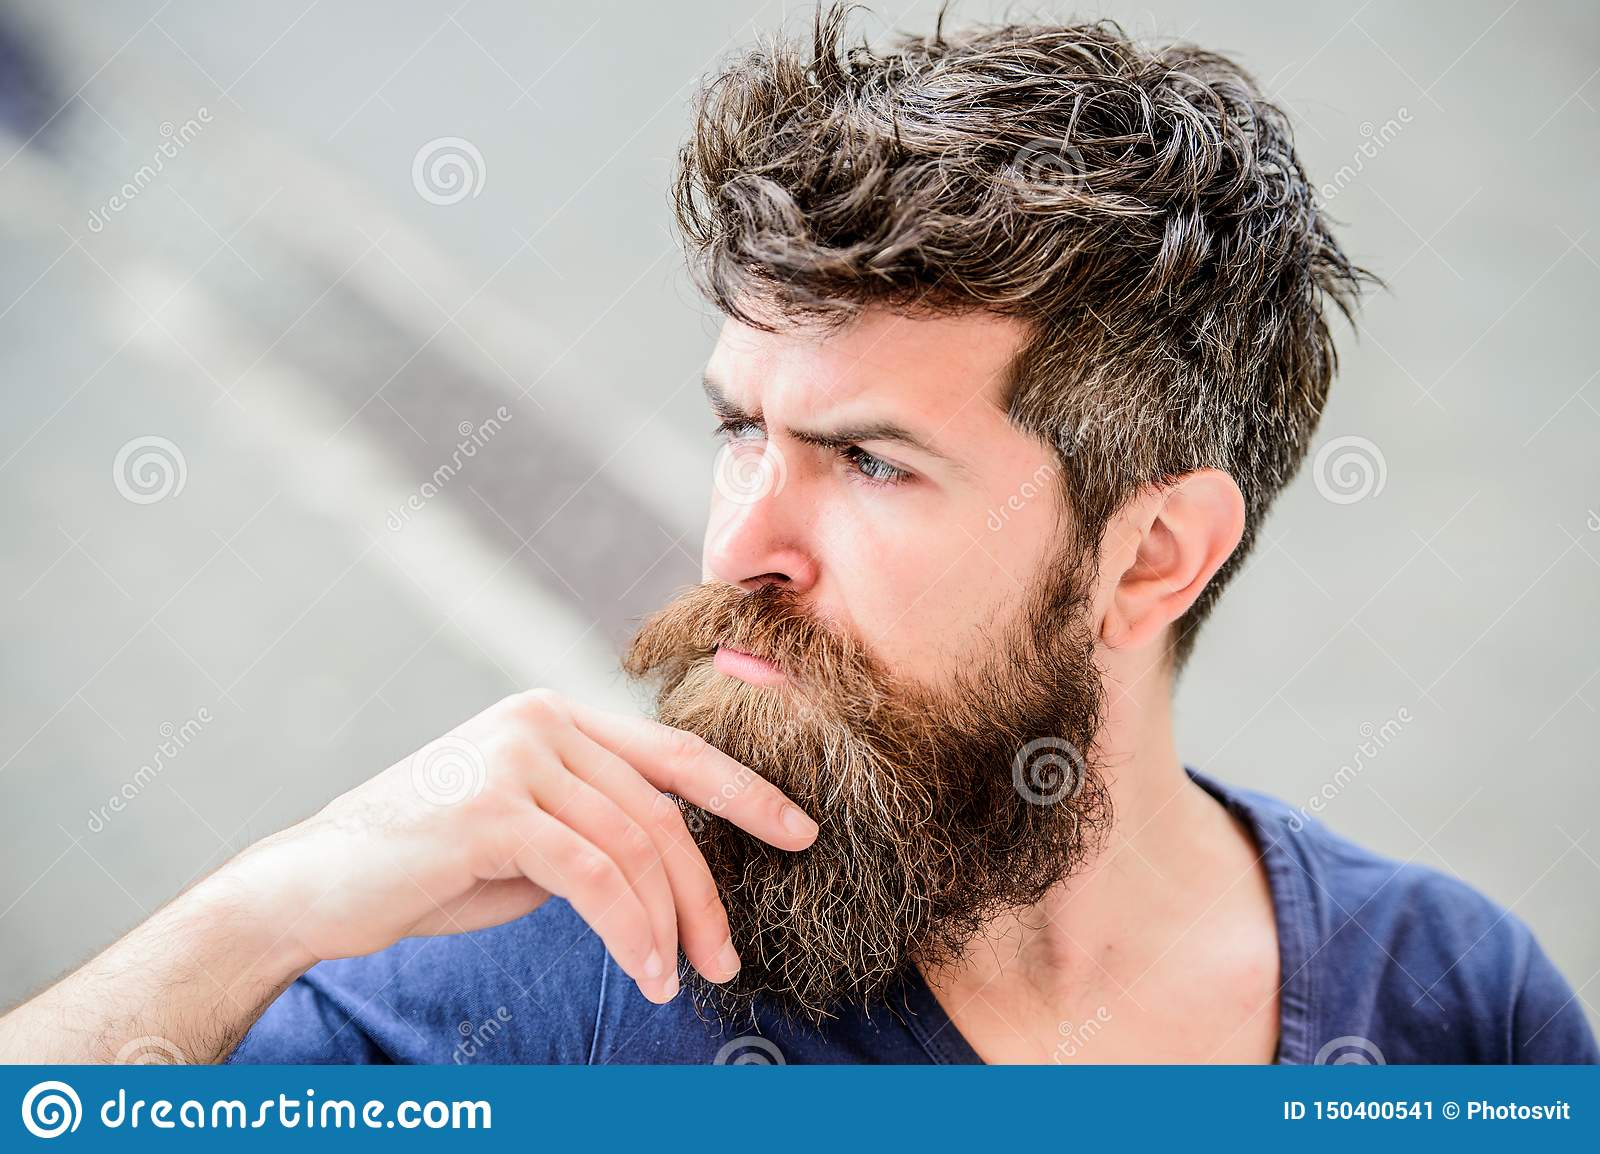 Making hard decision. Bearded man concentrated face. Thoughtful mood concept. Making important life choices. Man with